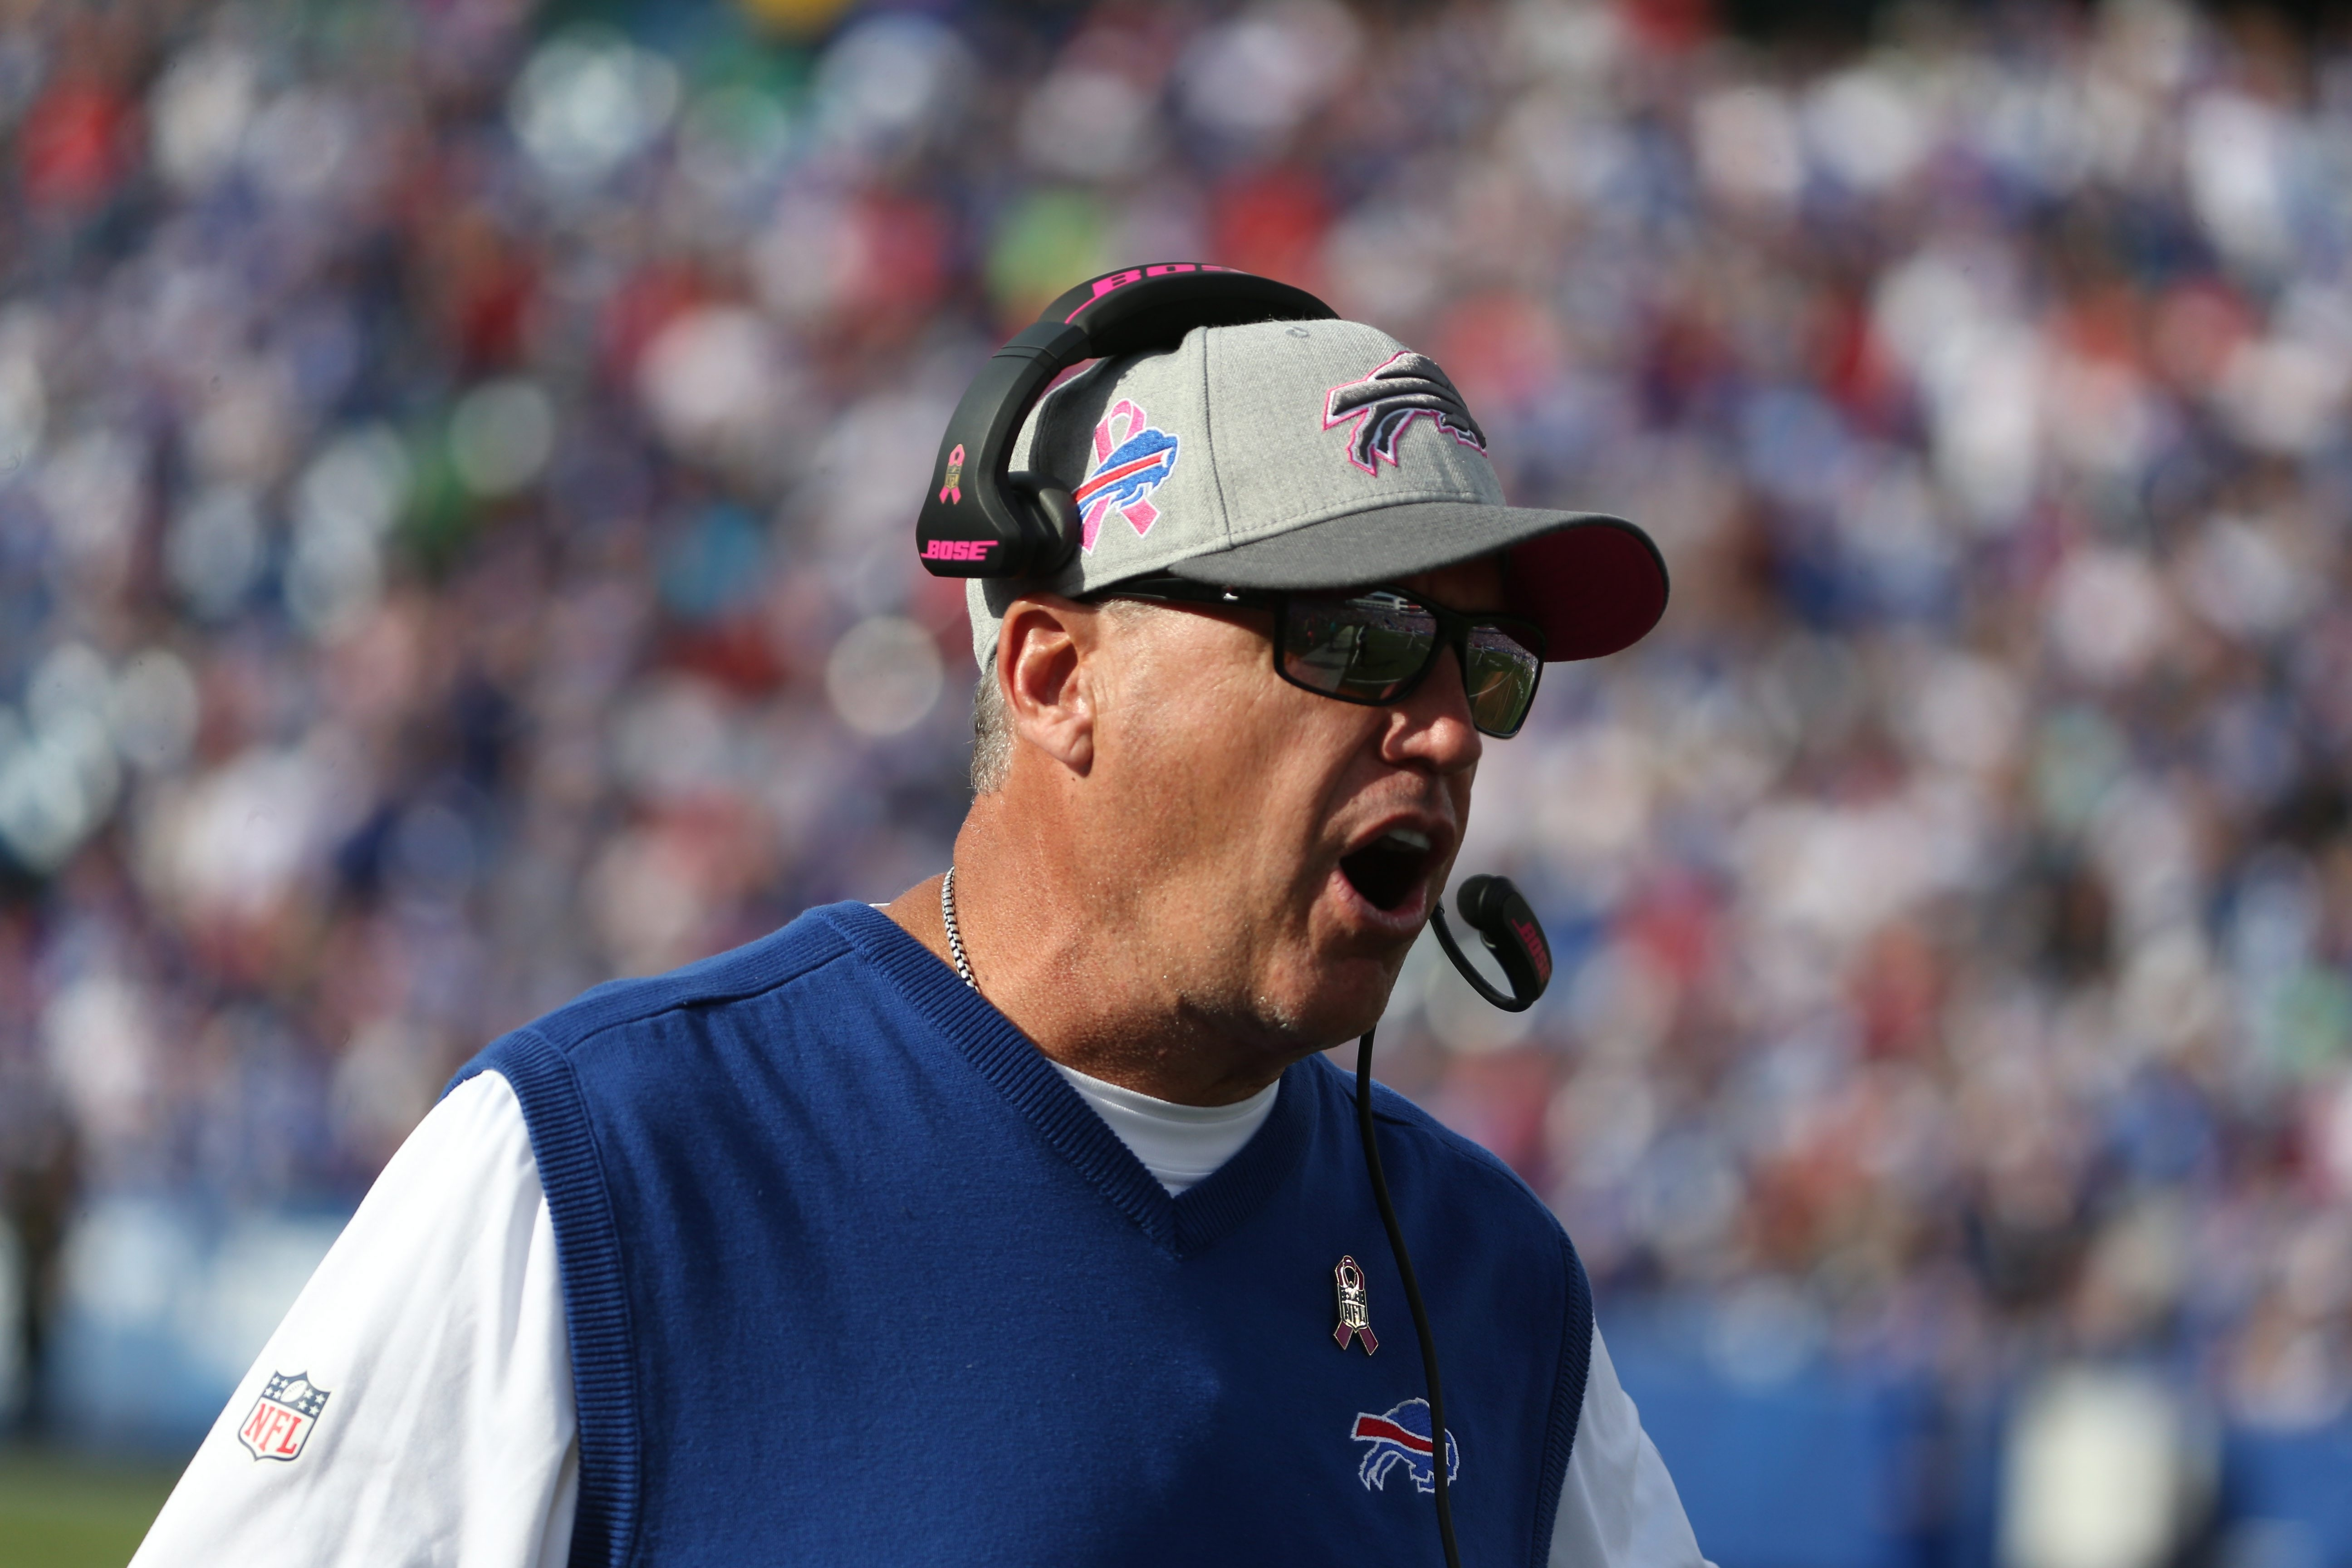 A high-ranking Buffalo Bills official said the team had every intention of keeping defensive coordinator Jim Schwartz after Rex Ryan was hired, but the new head coach had a different plan. (James P. McCoy/ Buffalo News)